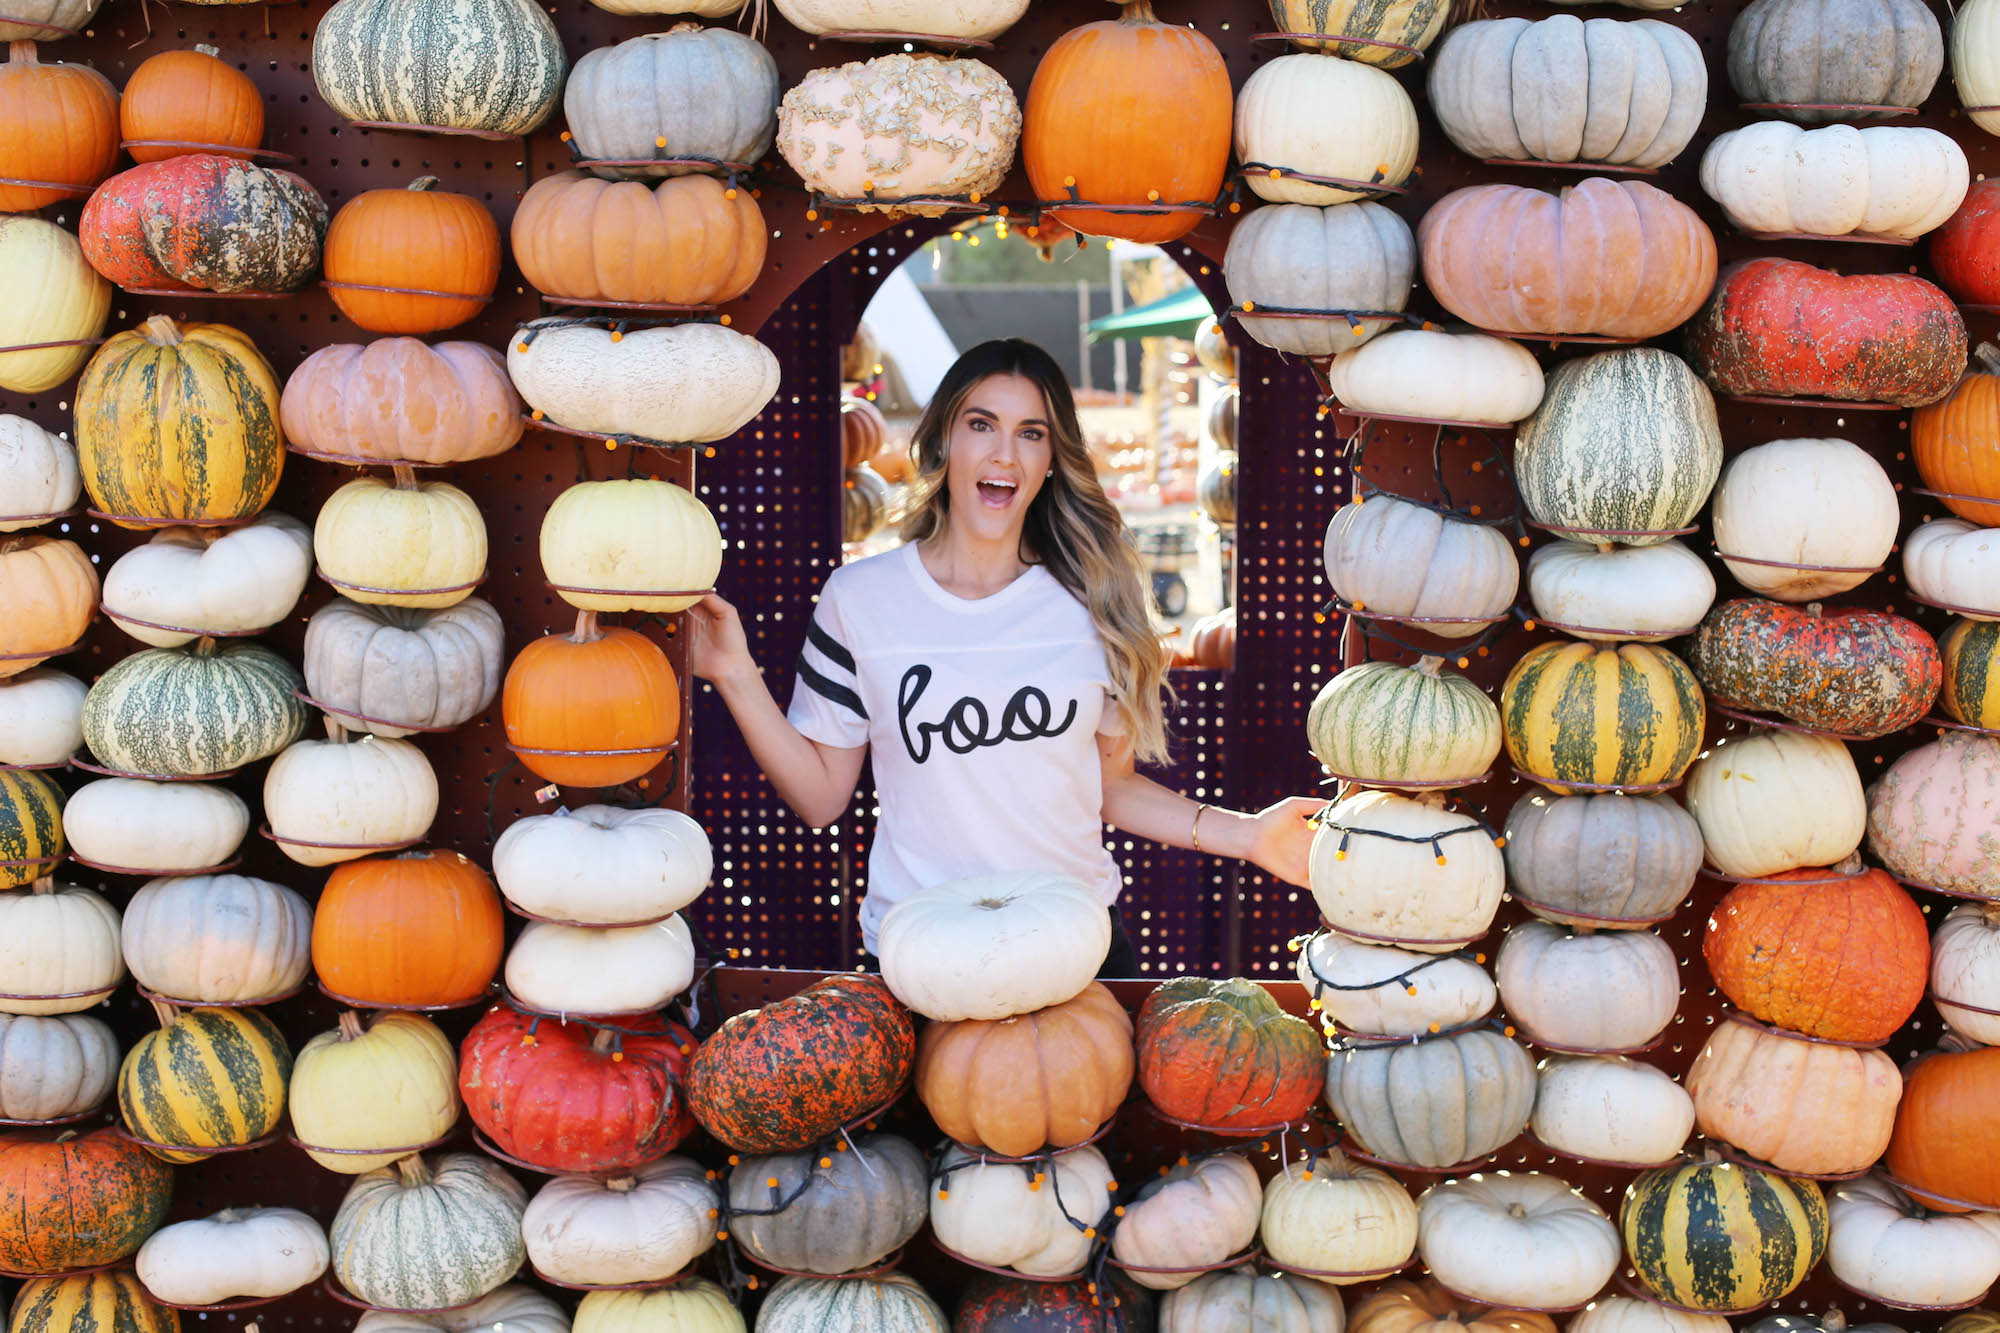 boo ily couture pumpkin patch styled by kasey